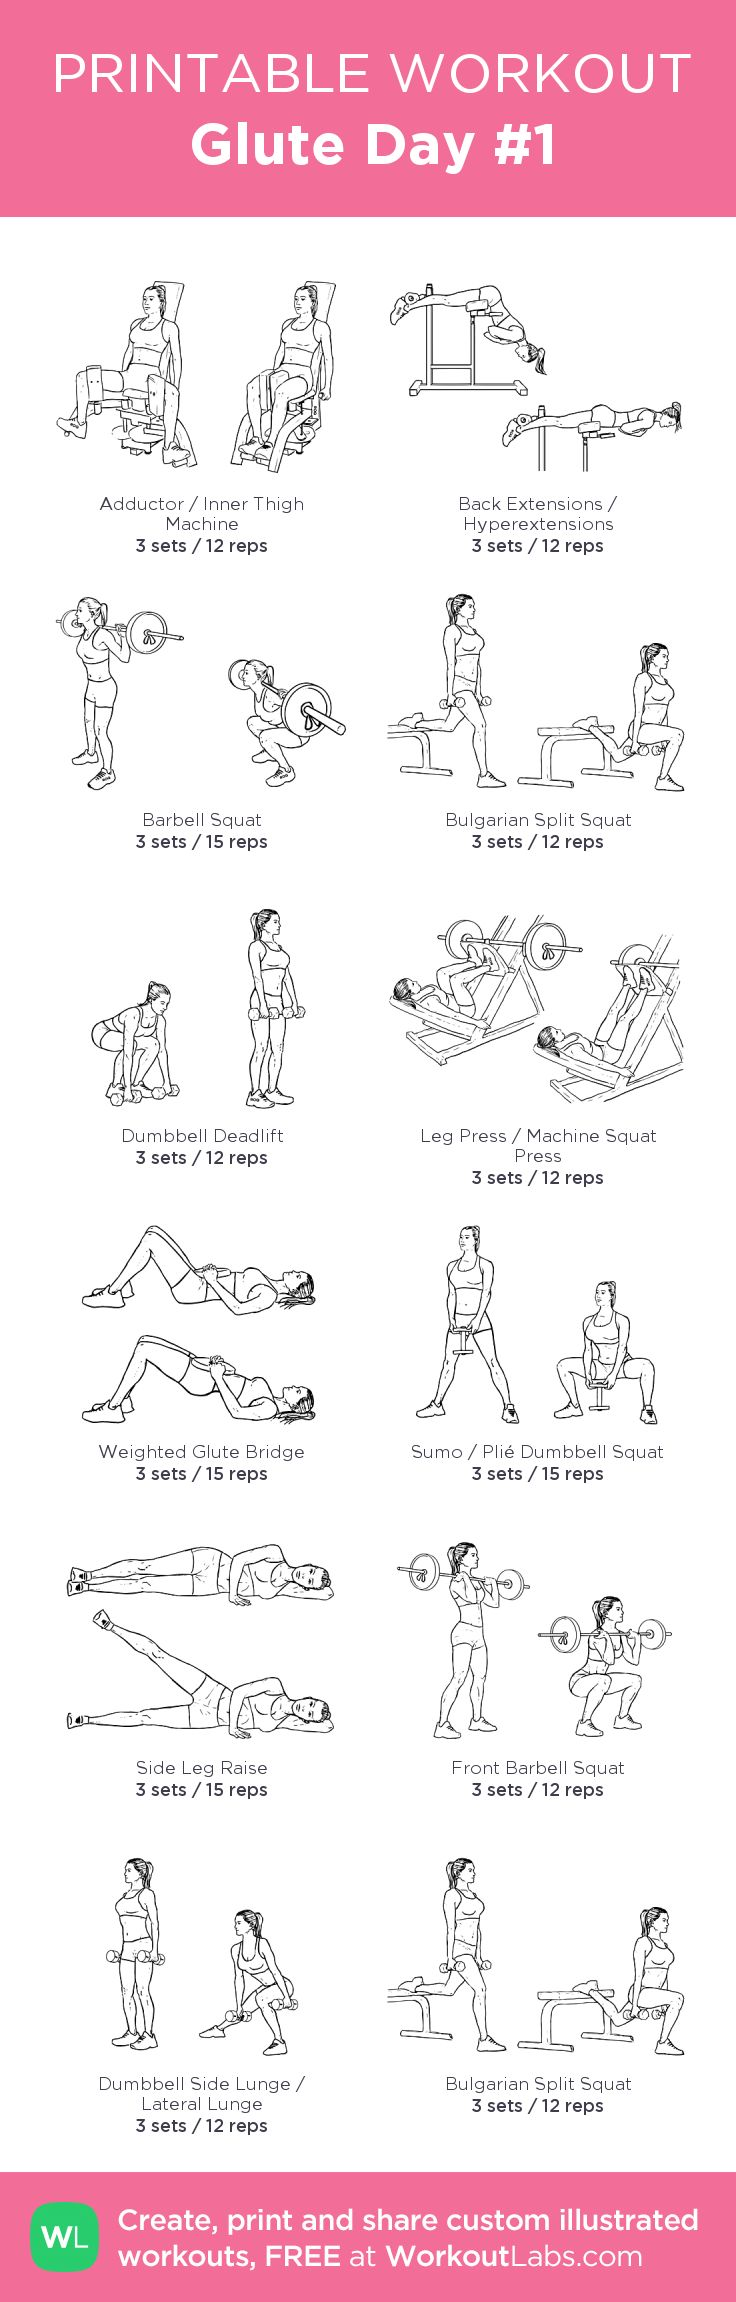 Glute Day #1 & #2